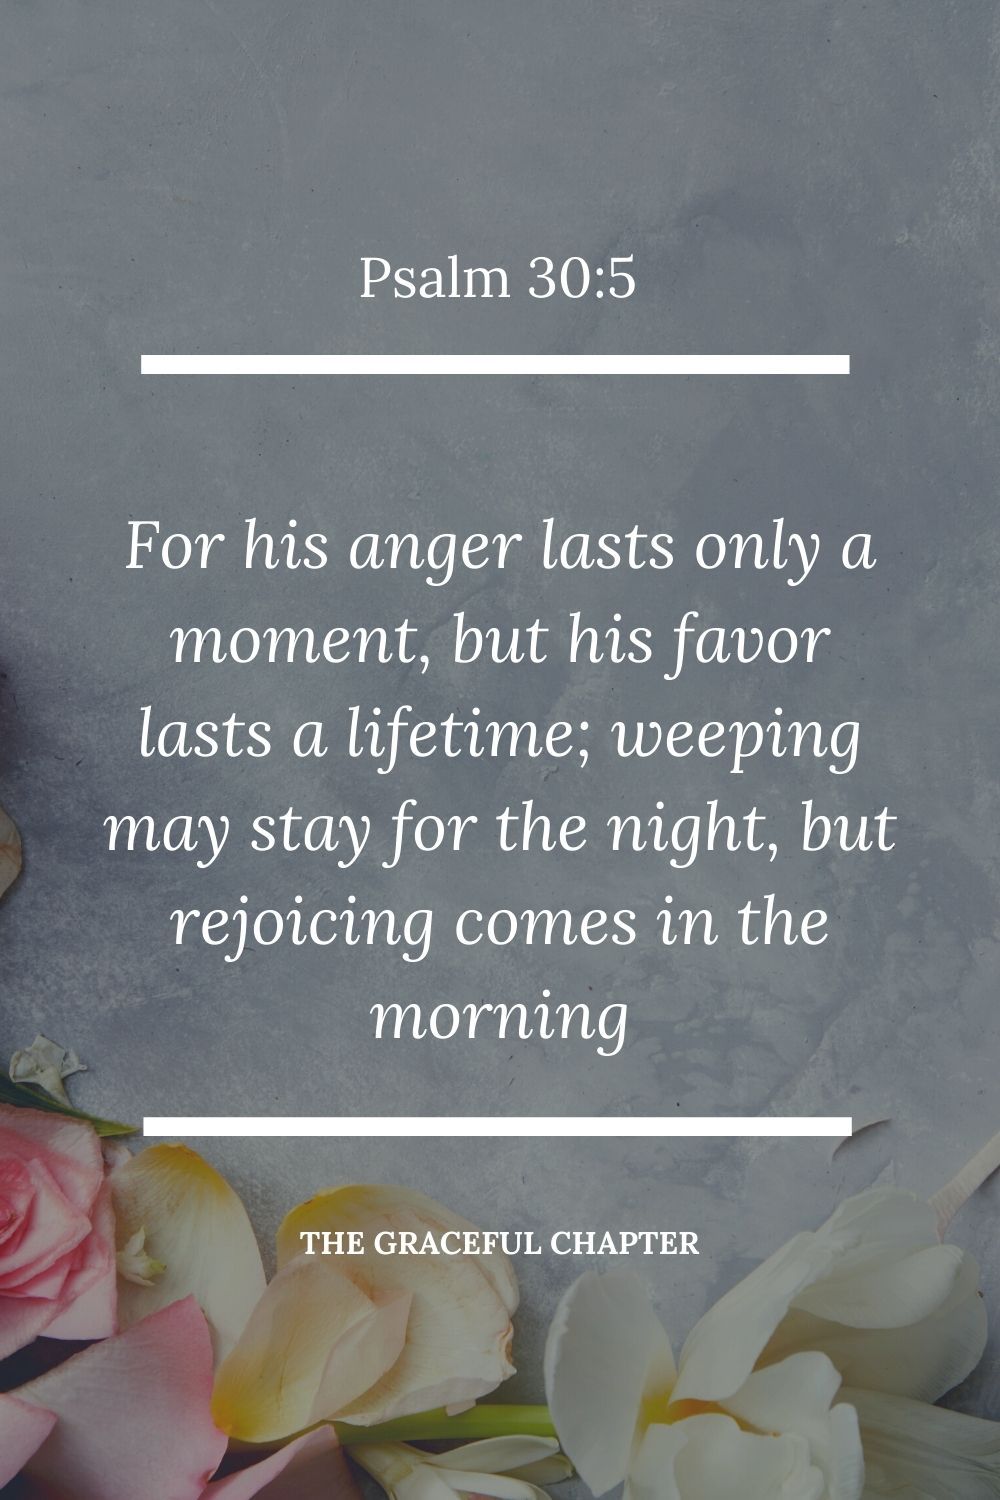 For his anger lasts only a moment, but his favor lasts a lifetime; weeping may stay for the night, but rejoicing comes in the morning Psalm 30:5